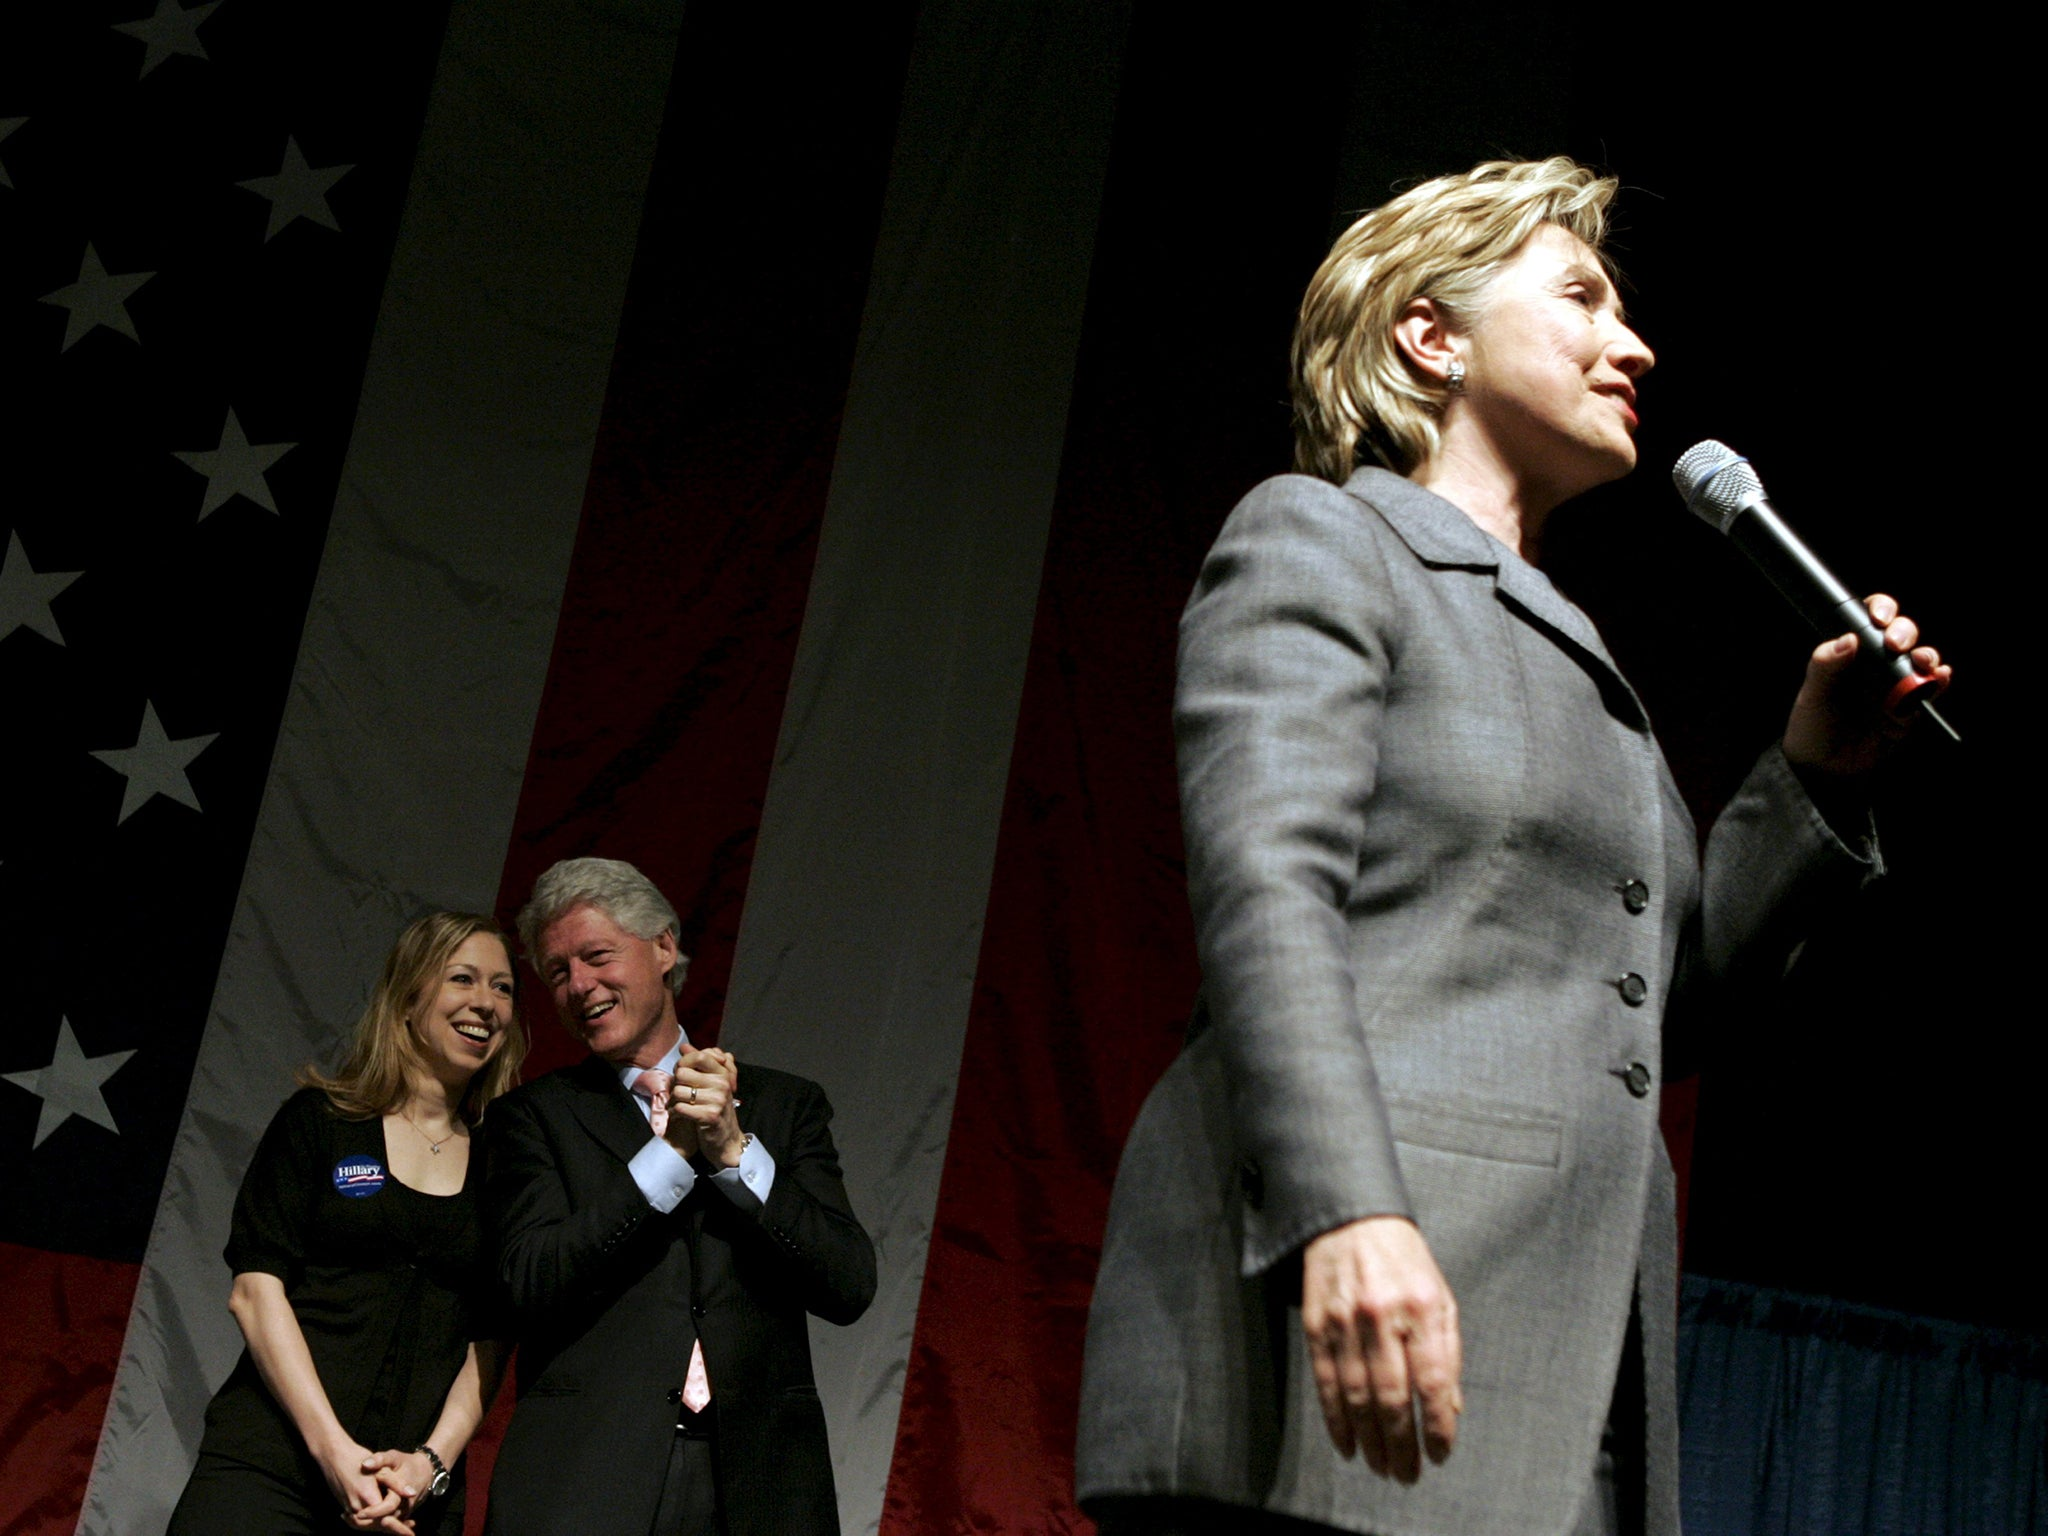 Hillary Clinton would appoint Bill Clinton to lead on the economy ...